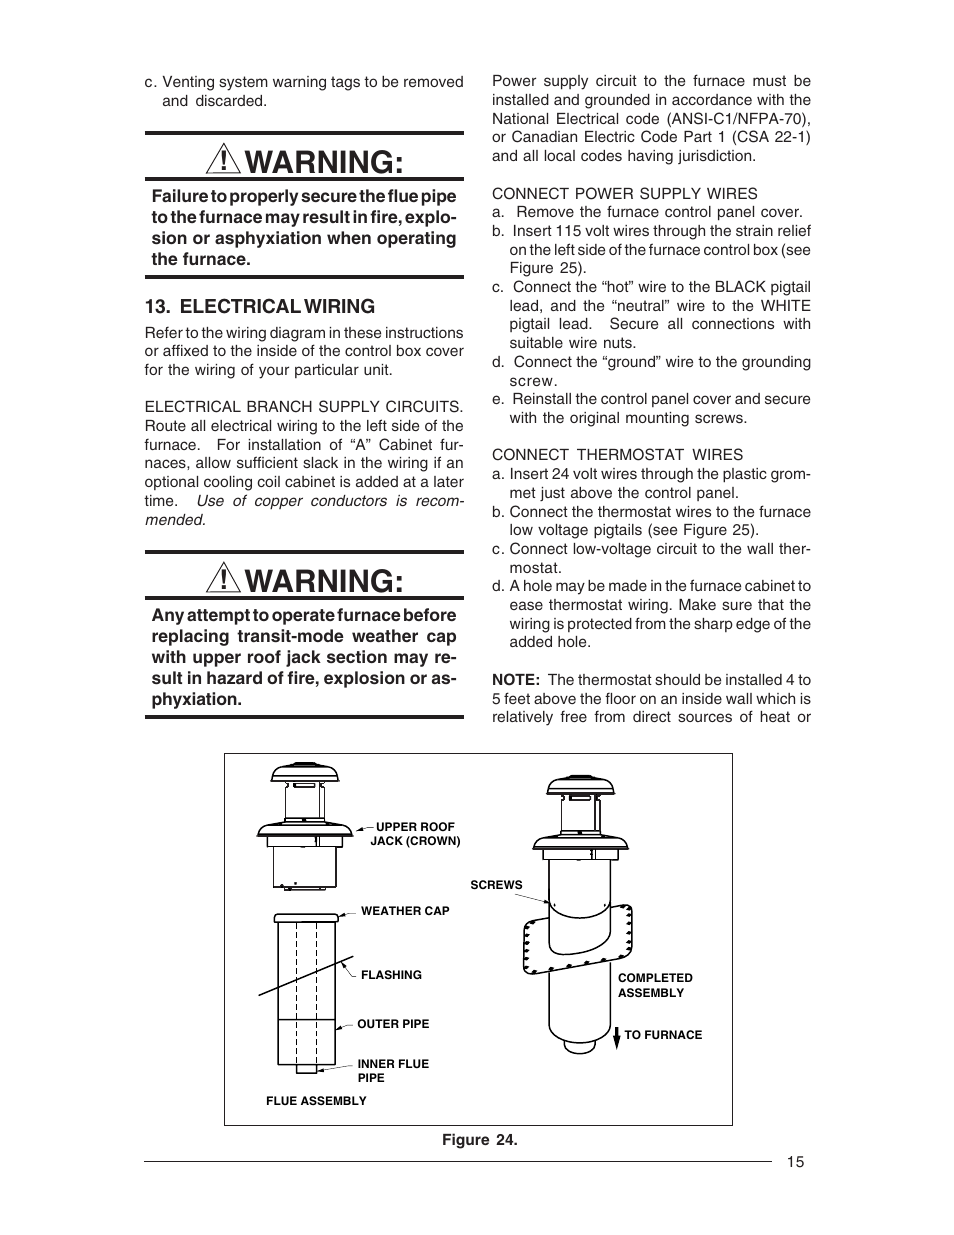 Warning Nordyne M1m User Manual Page 15 40 24 Volt Coil Wiring Diagram